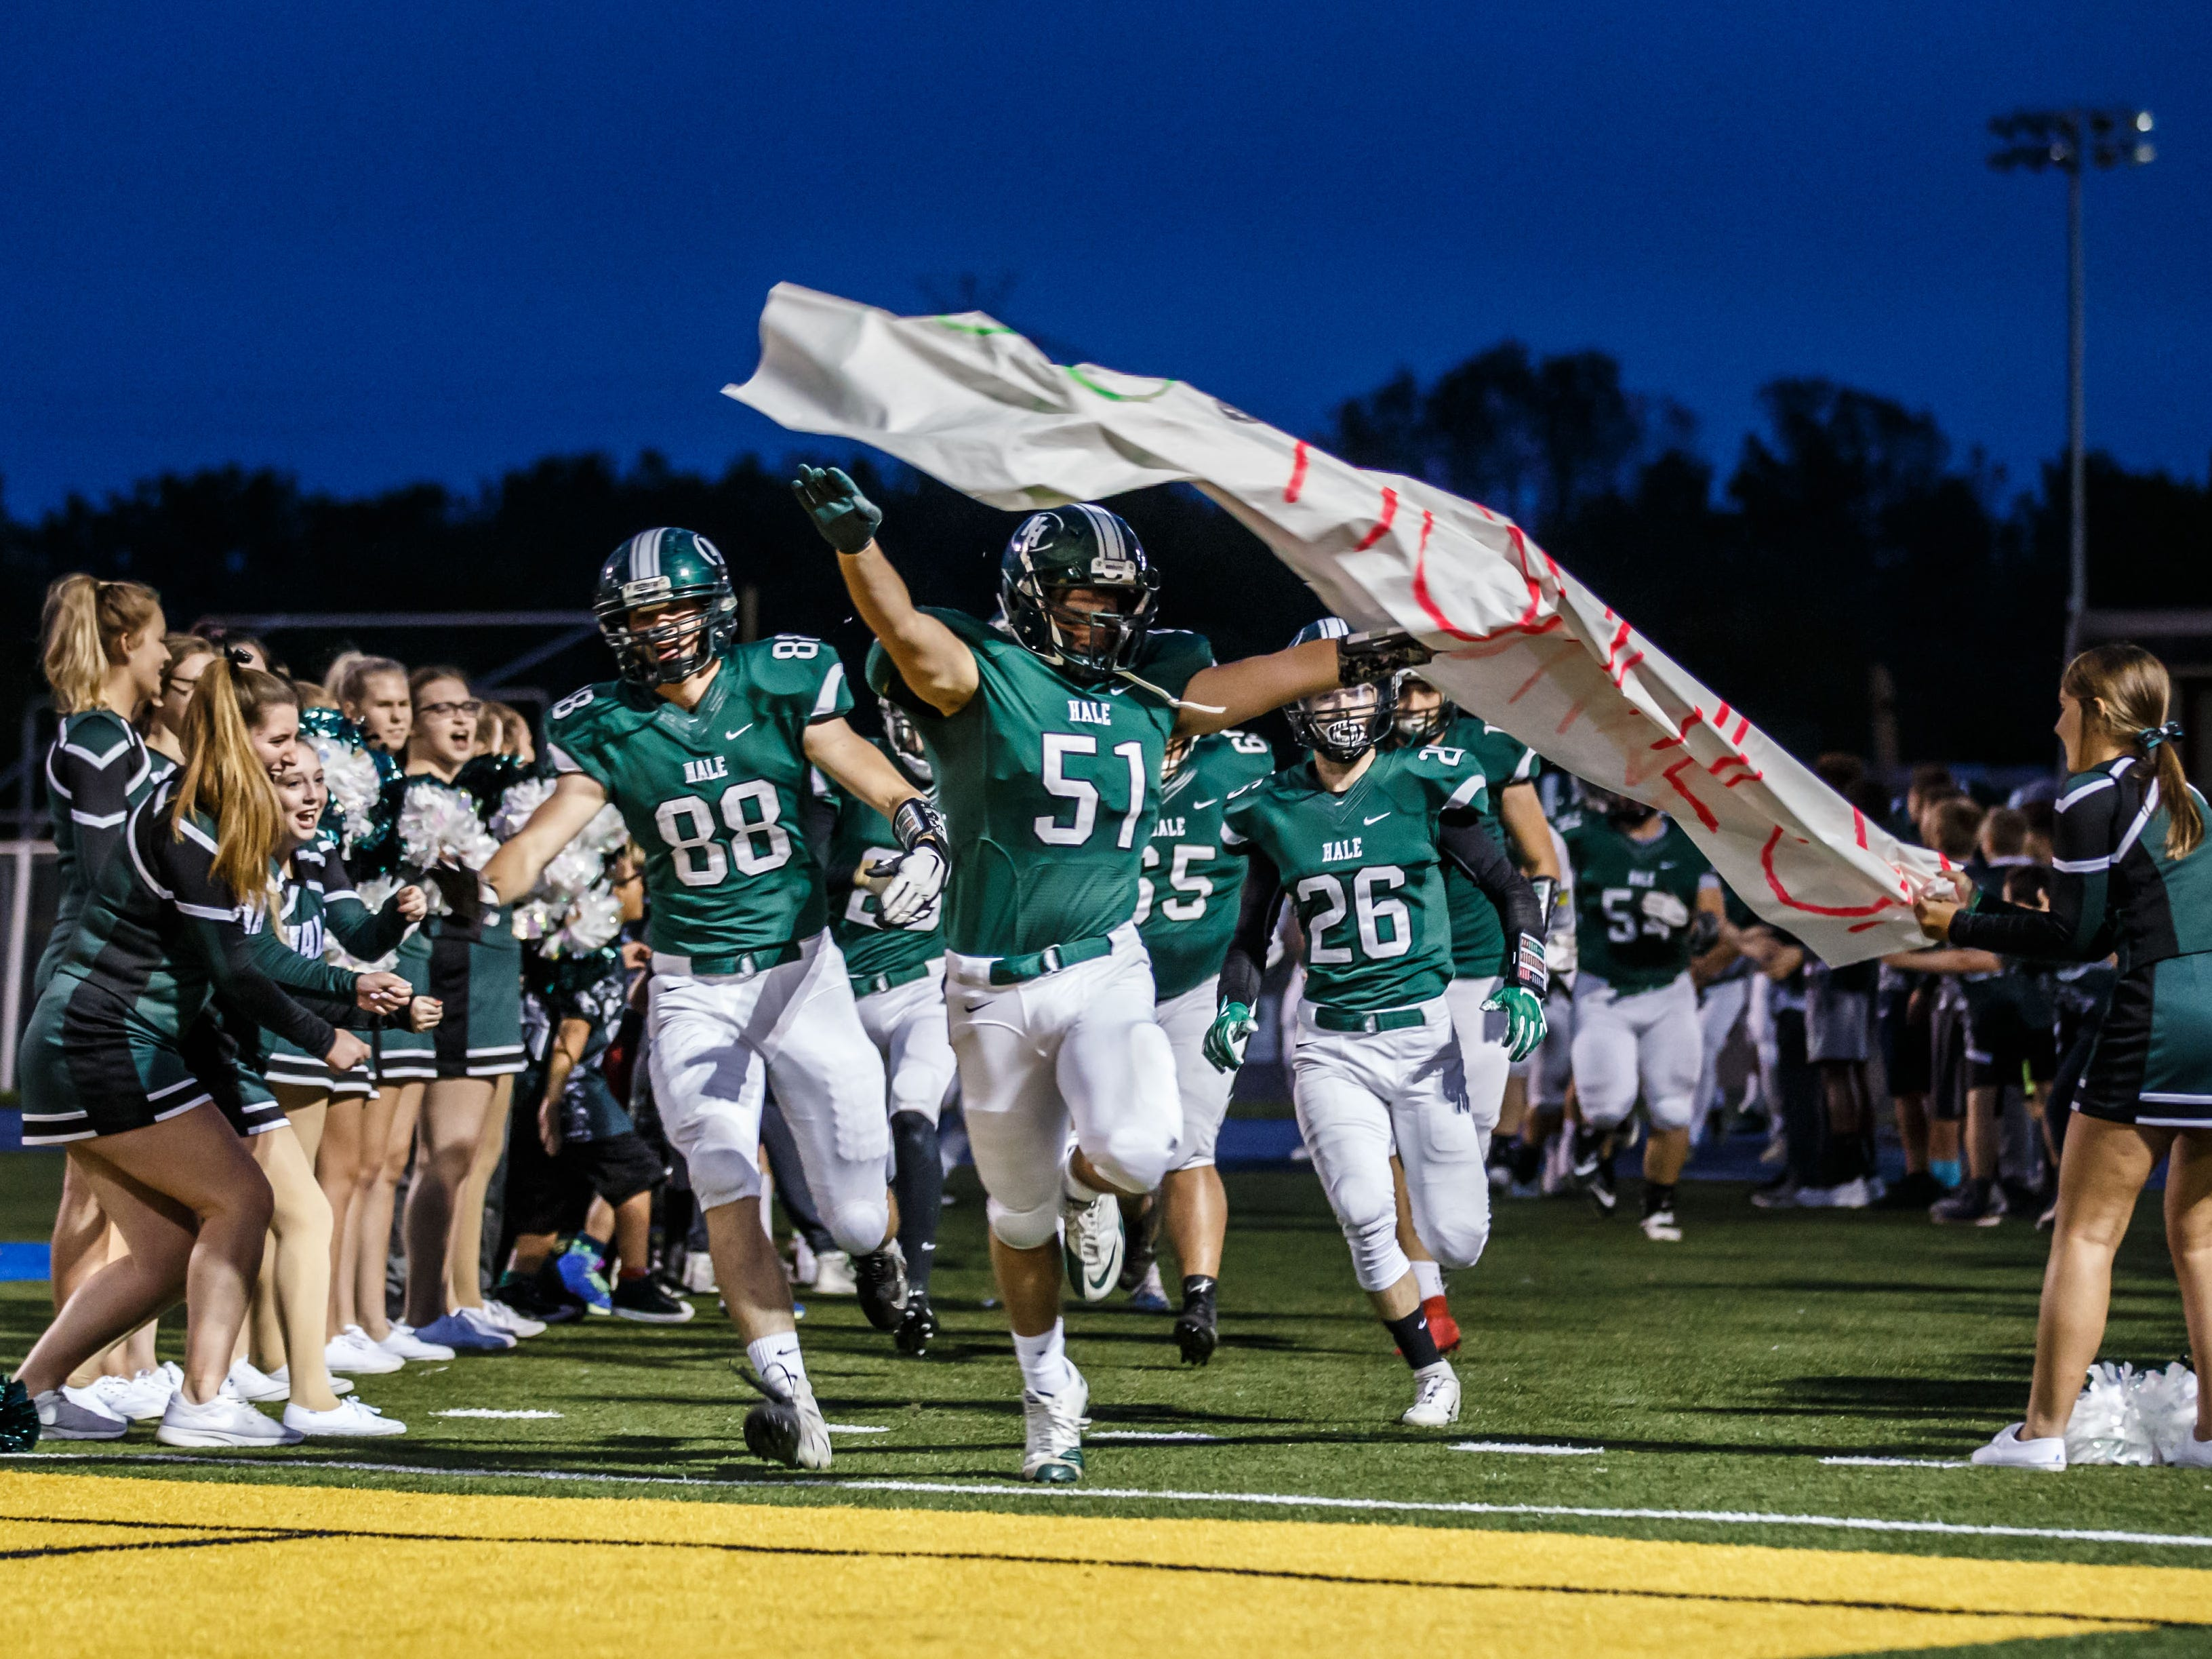 West Allis Hale senior Mario Delval (51) leads his team onto the field prior to the game at home against Wauwatosa West on Thursday, Sept. 27, 2018.